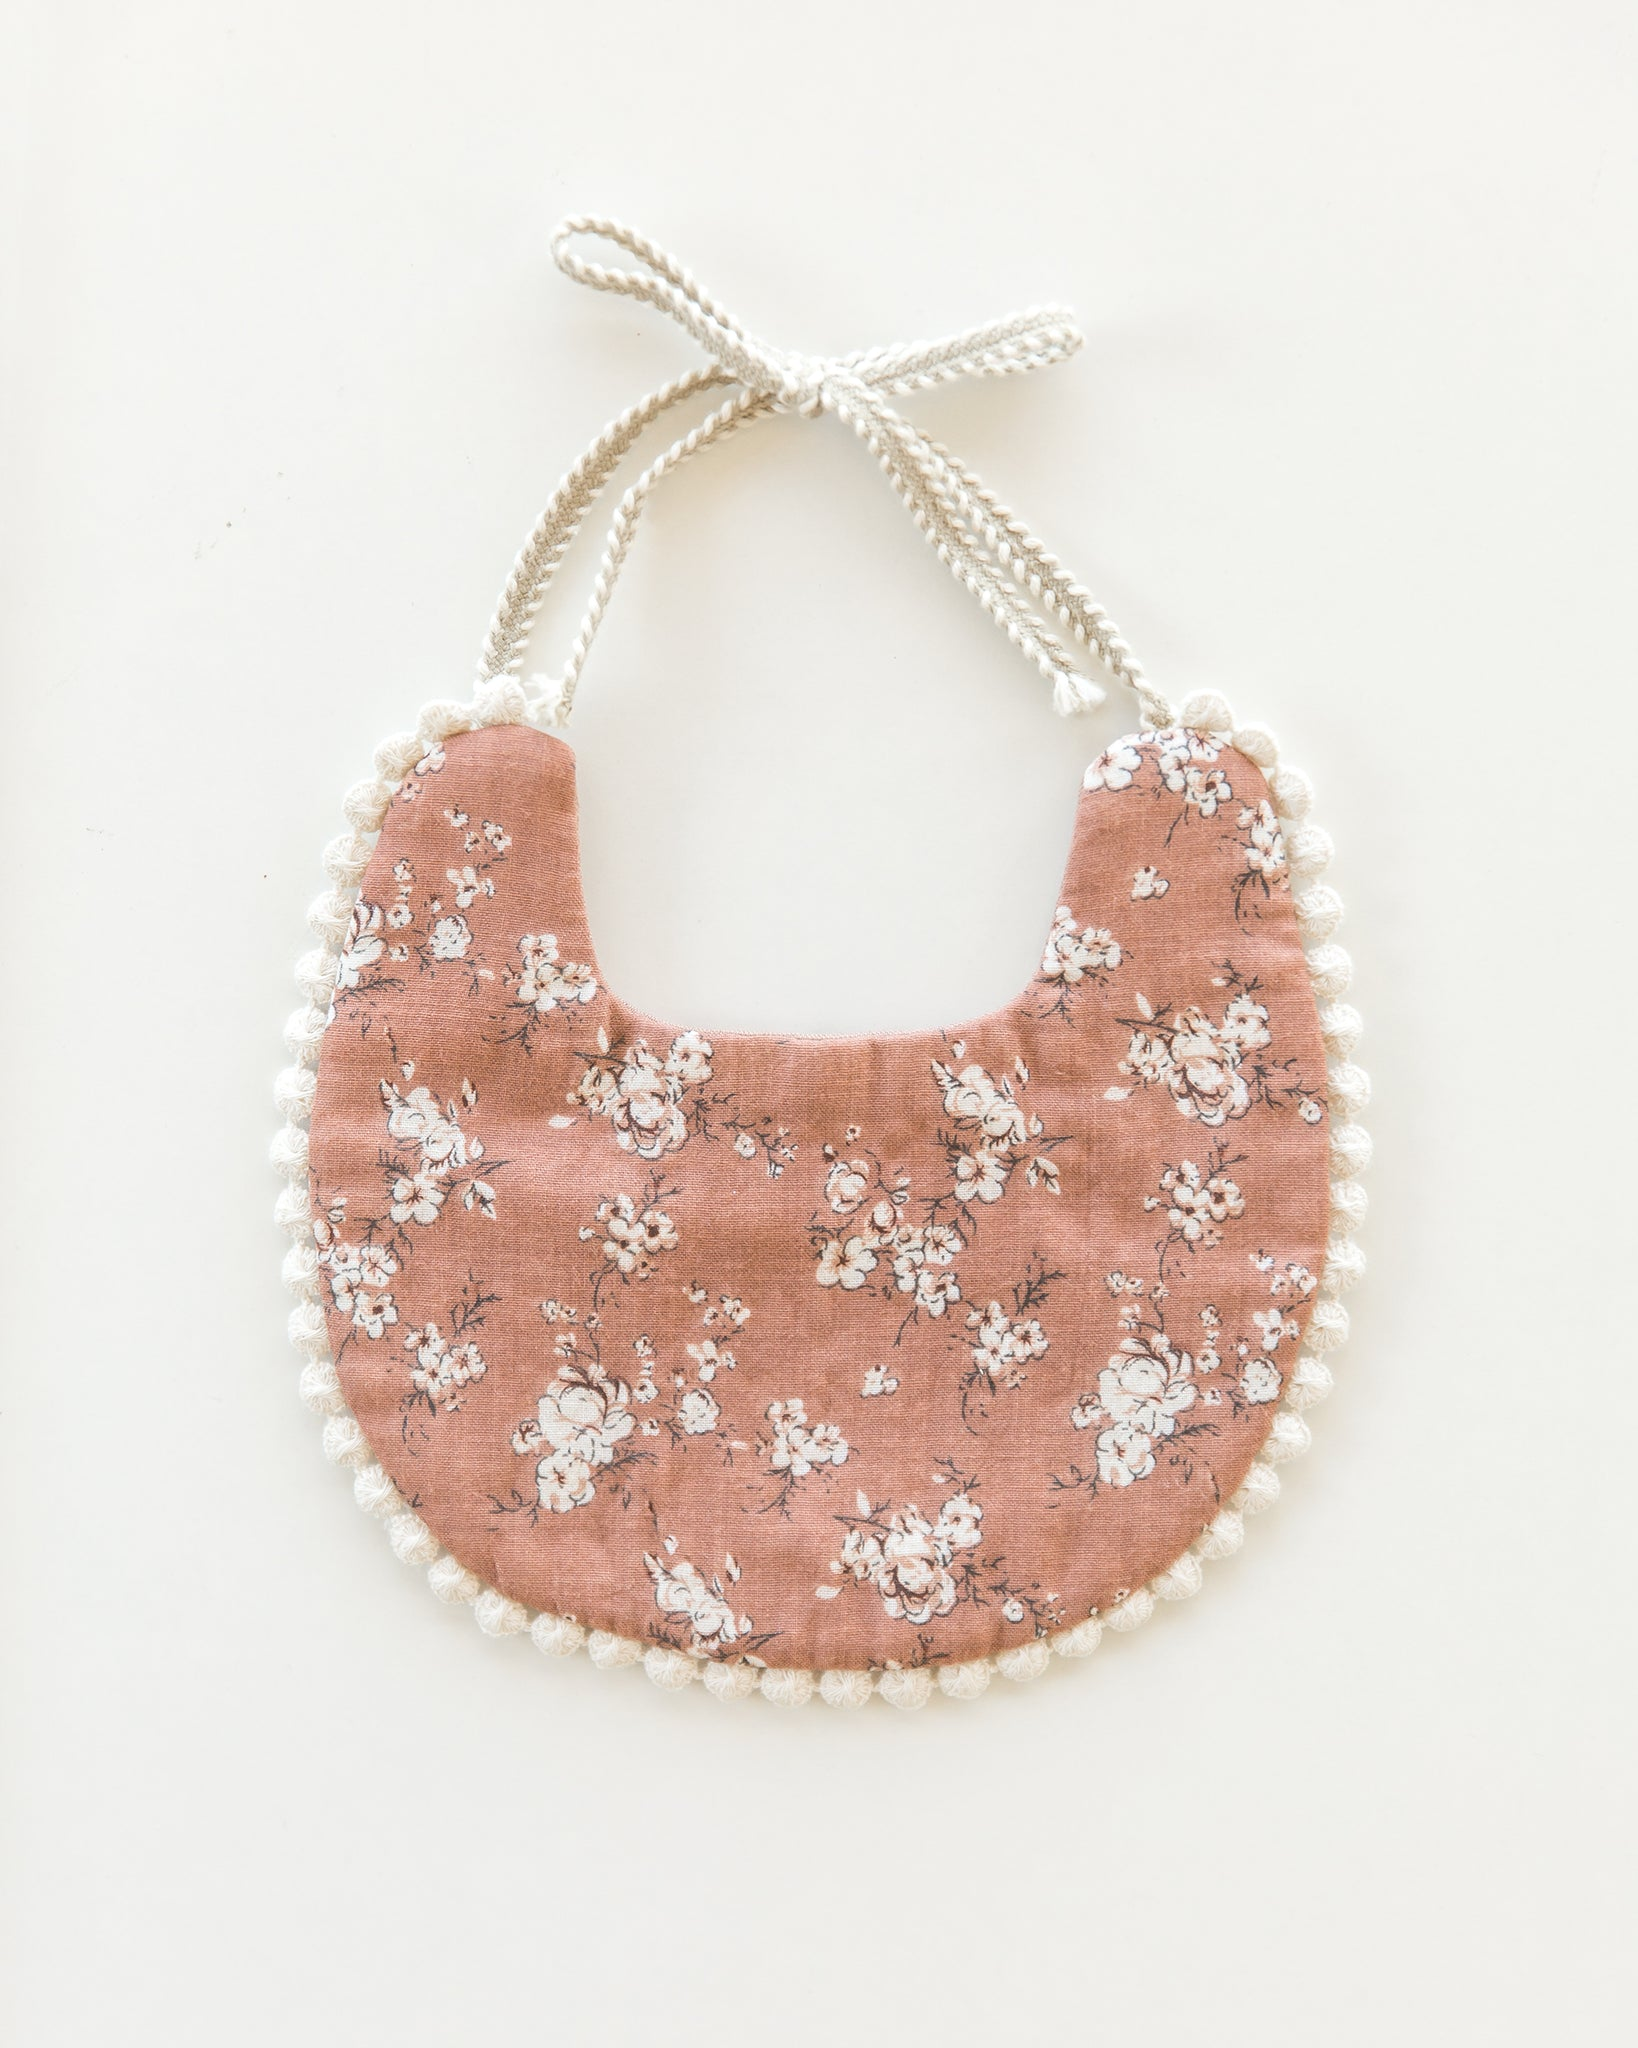 Scalloped Bib in Rosy Brown & Posies // Double Sided - Reverie Threads